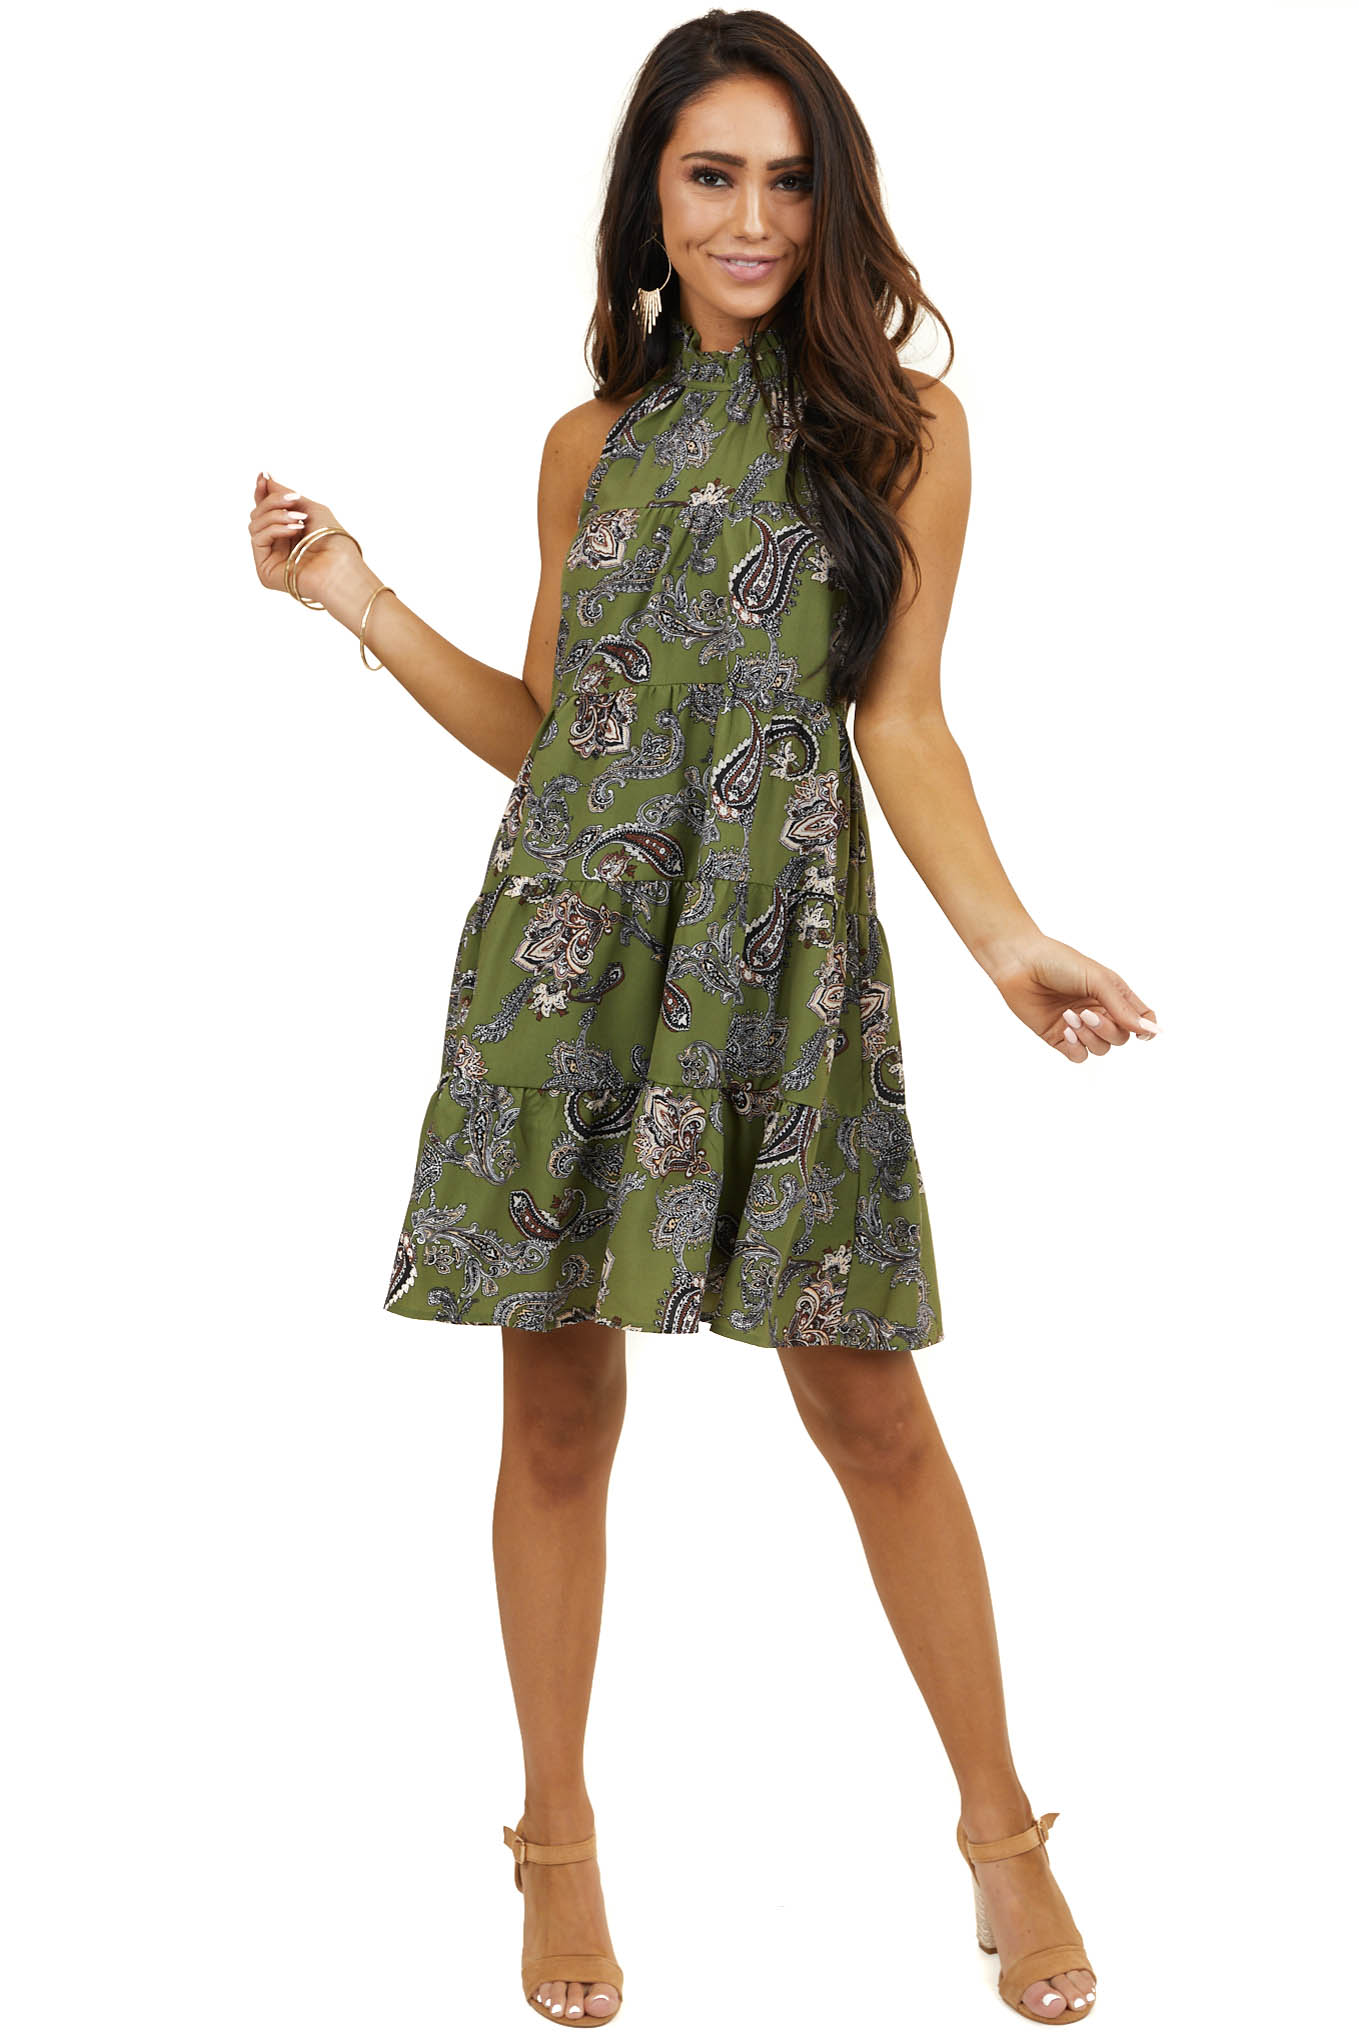 Olive Green Paisley Print Halter Top Tiered Short Dress